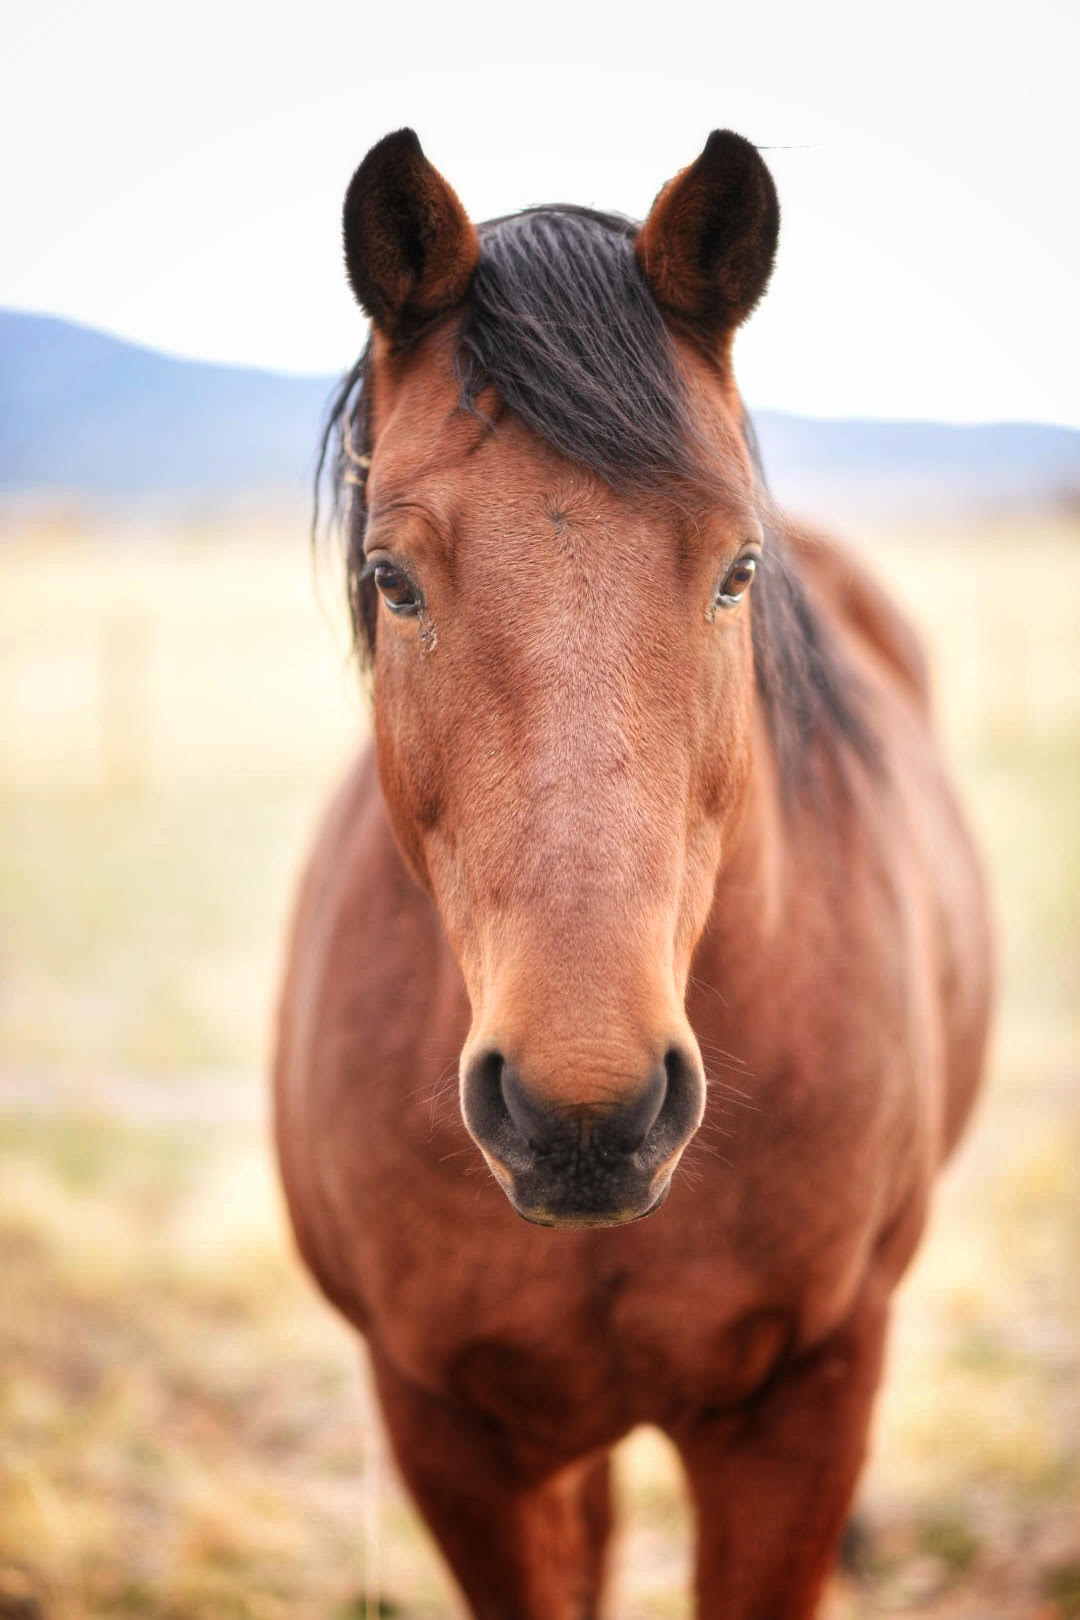 I love horses, and captured this handsome horse while on Reeder Mesa, near Grand Junction, Co.